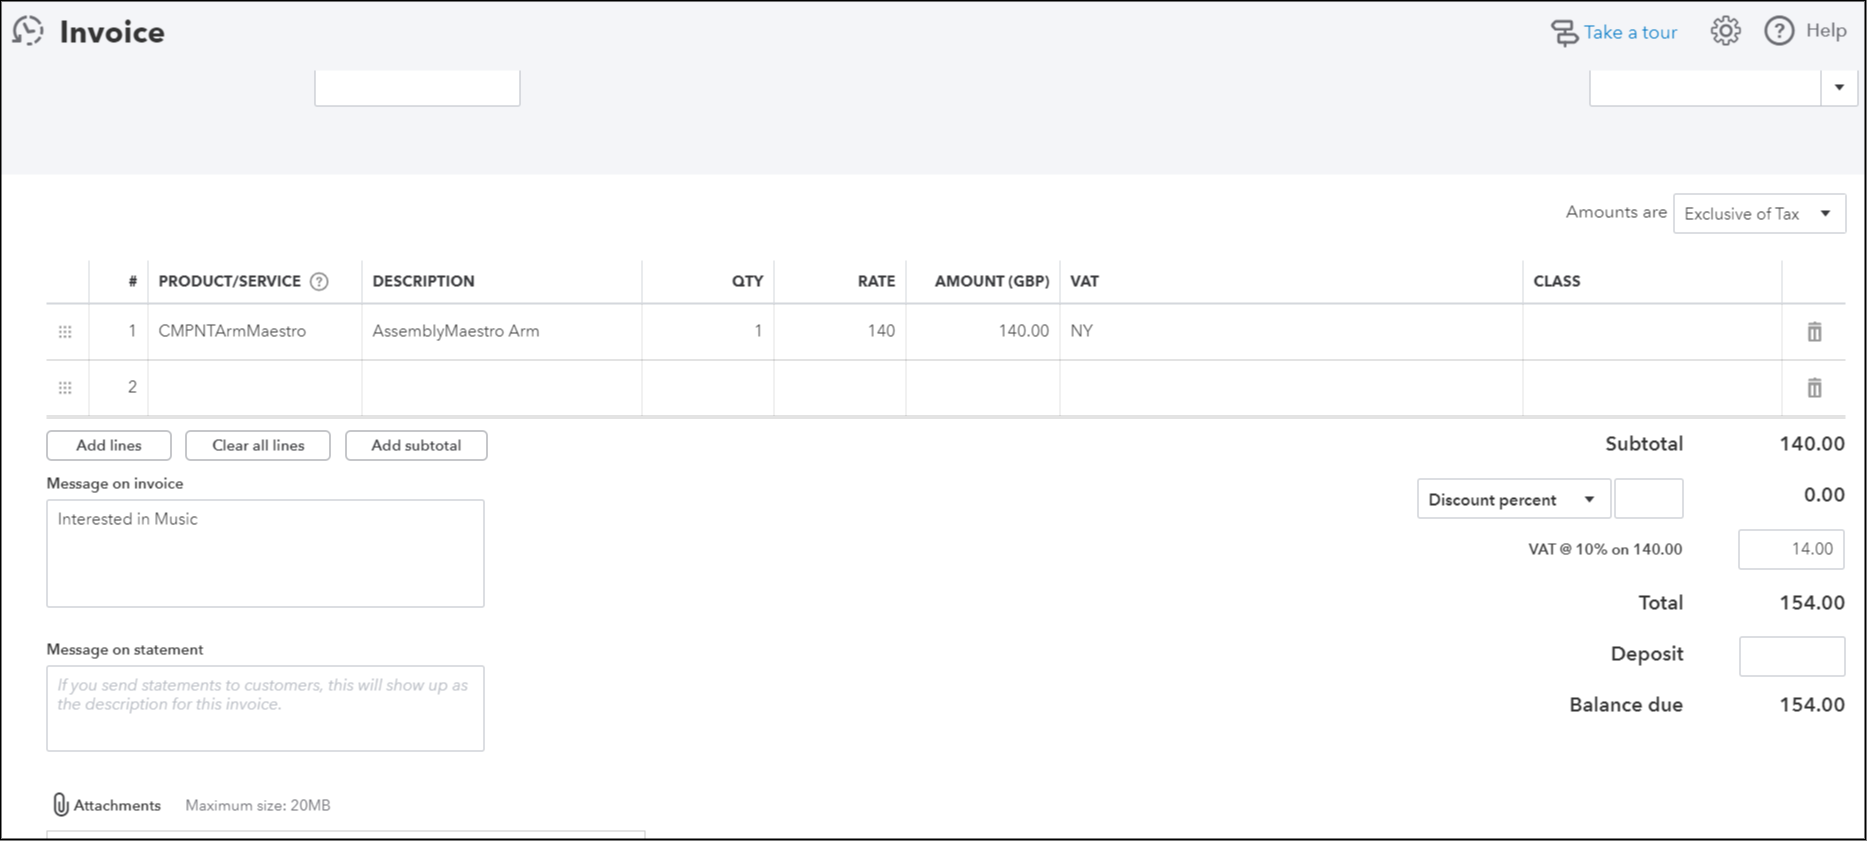 InoLink – Preferred App to integrate QuickBooks Online and Dynamics 365 CRM